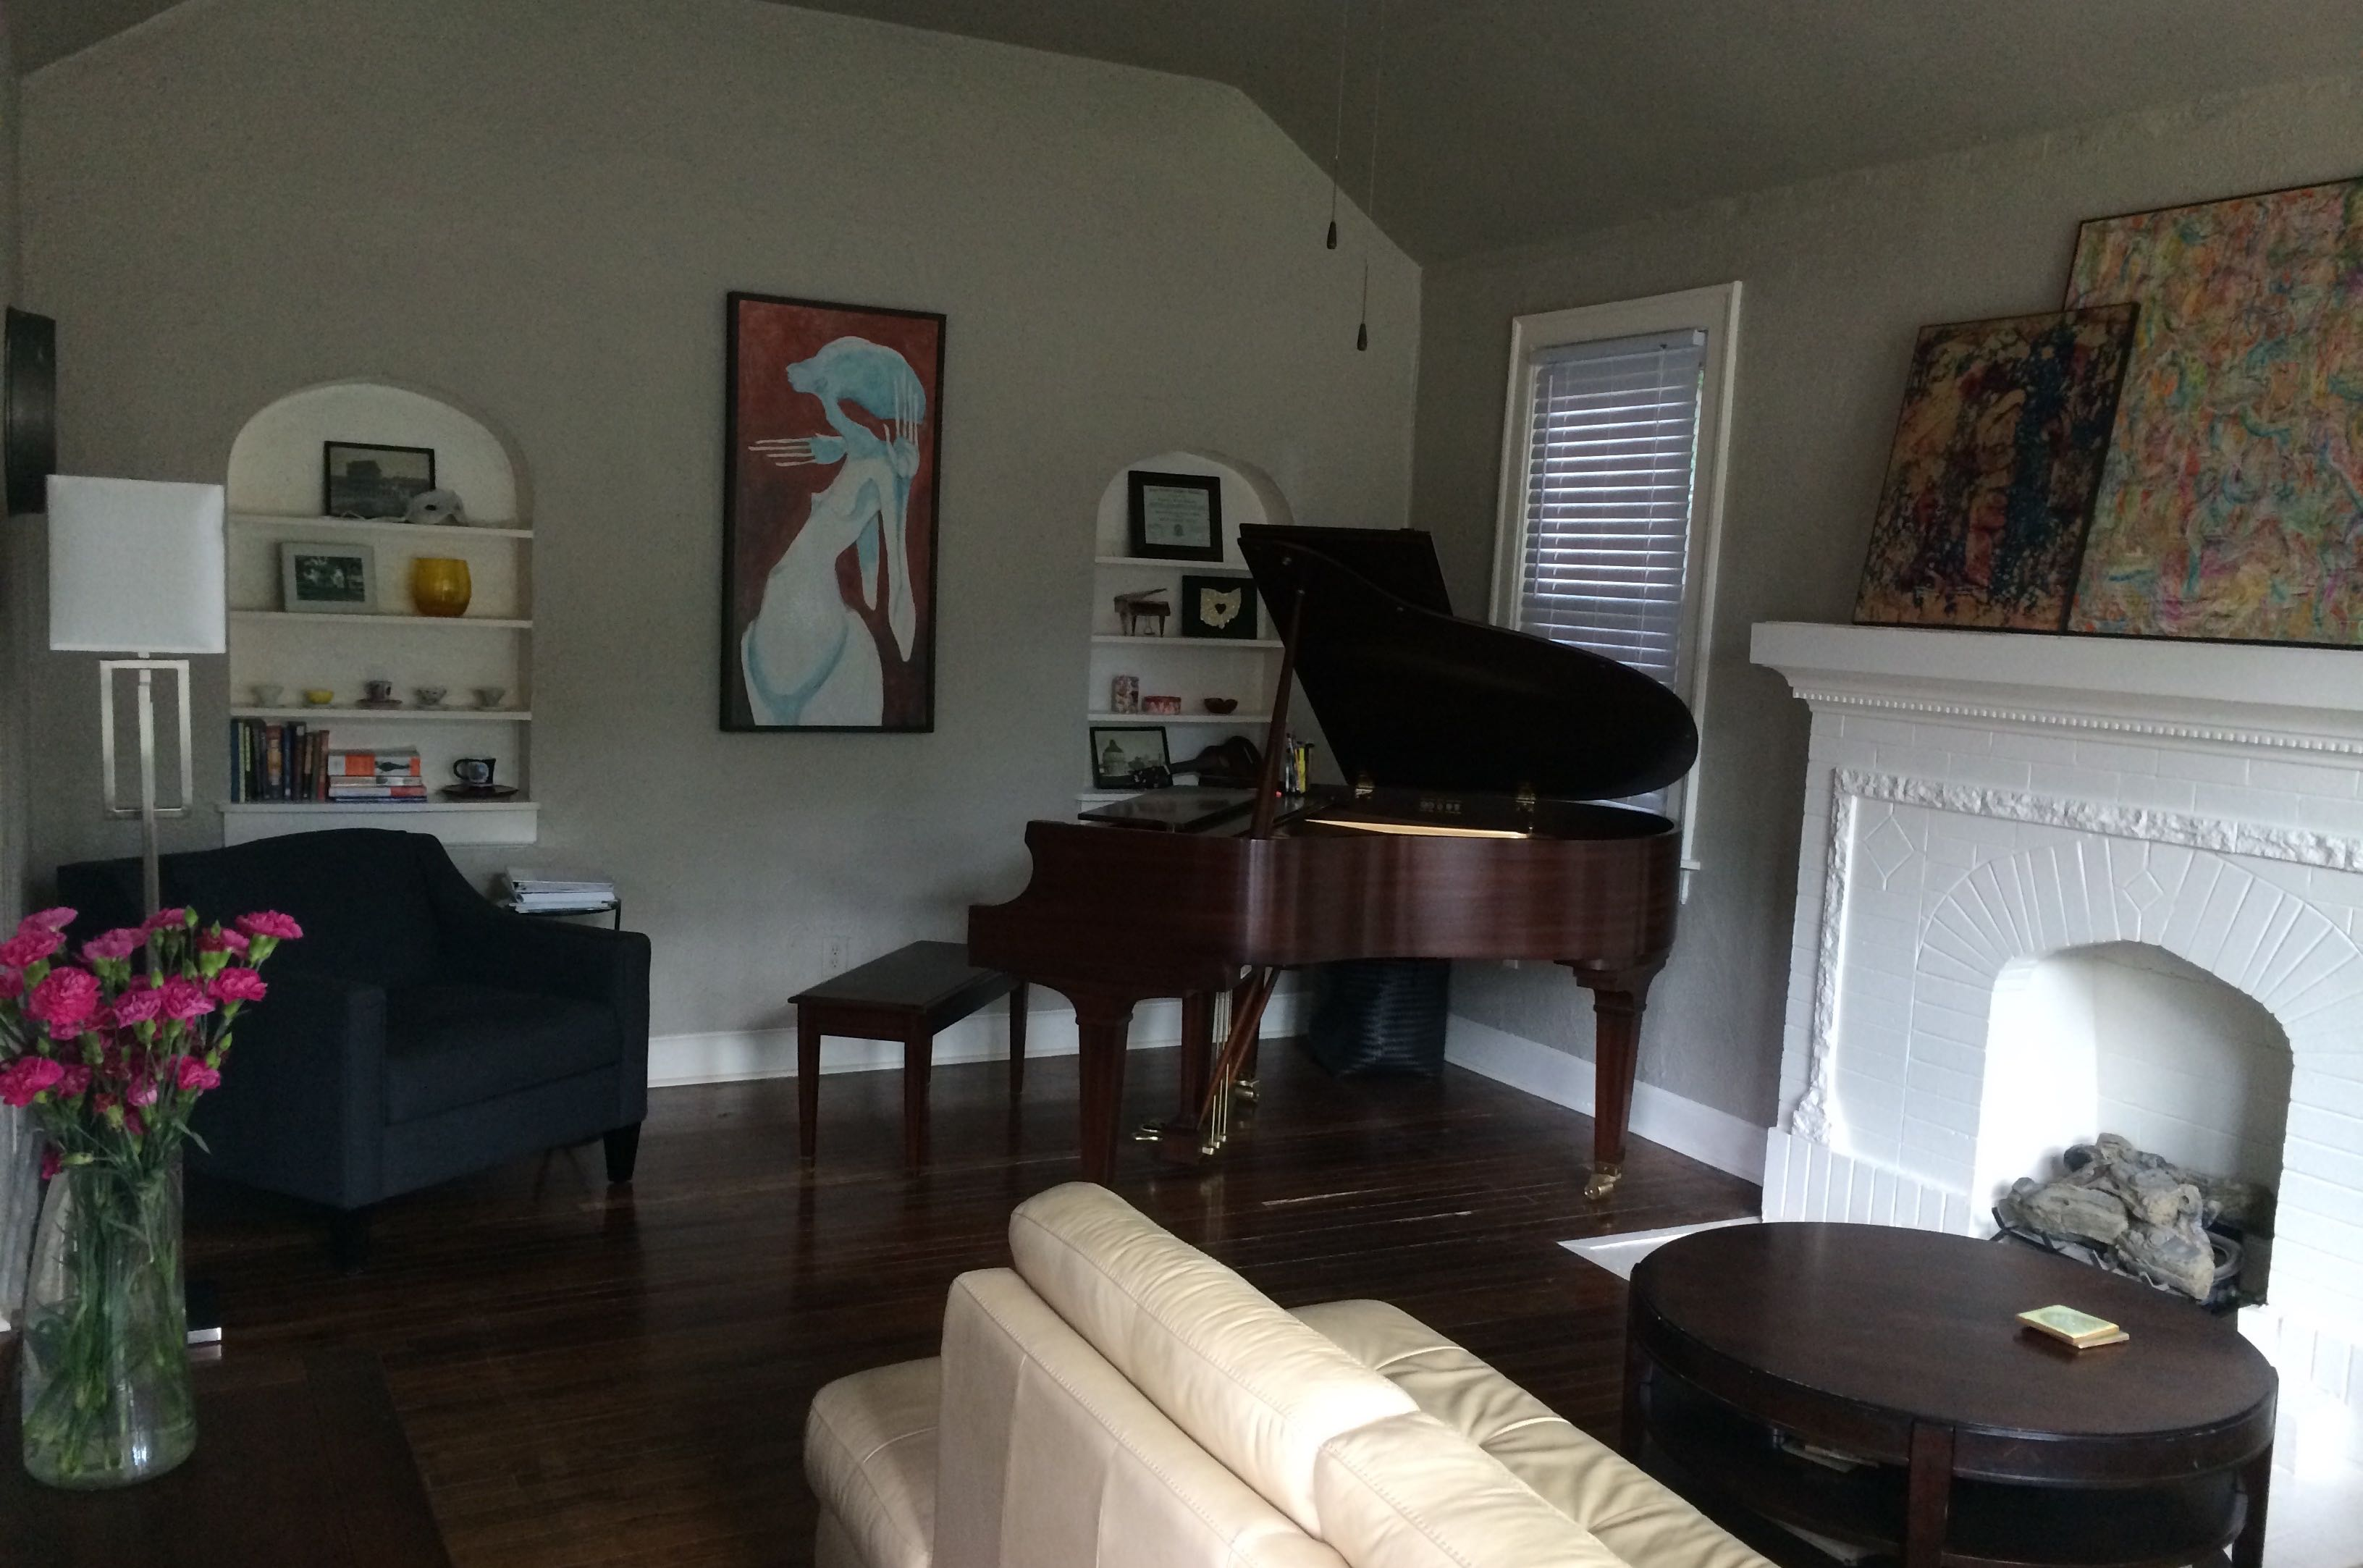 Inside the piano studio in OKC